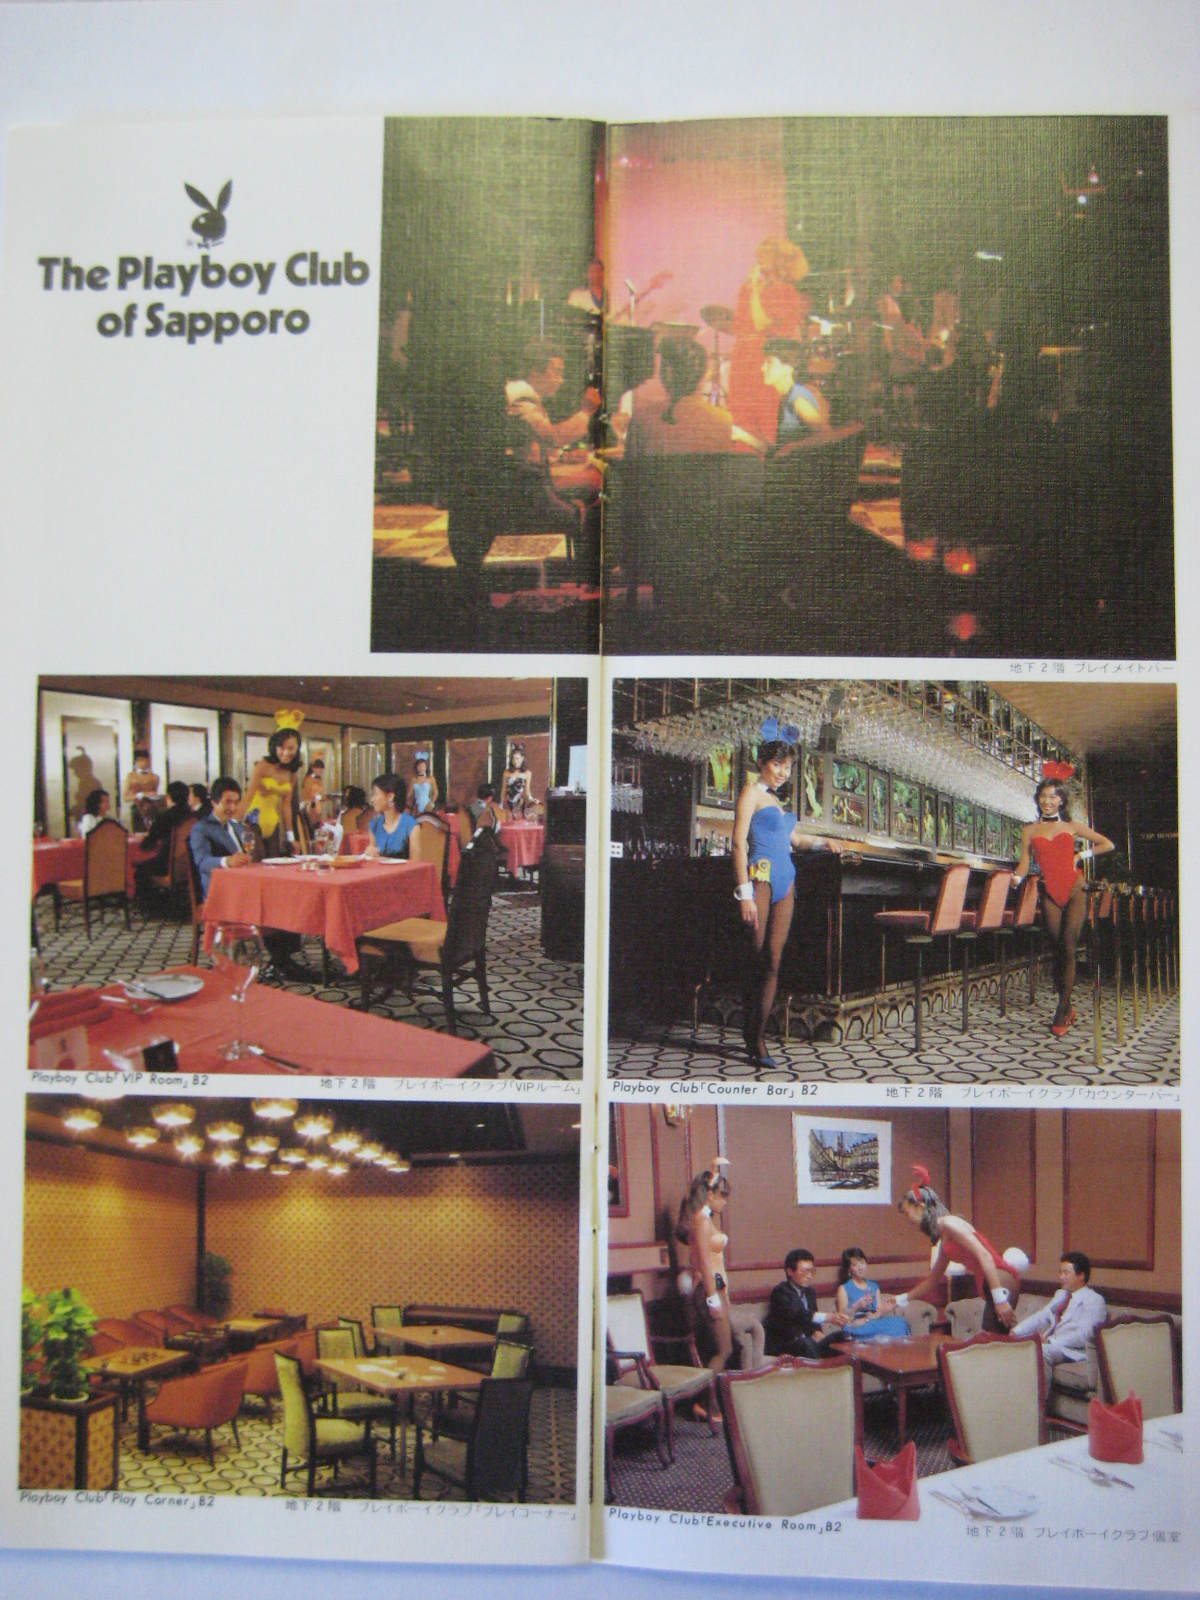 Alpha Hotel Sapporo Playboy club Brochure